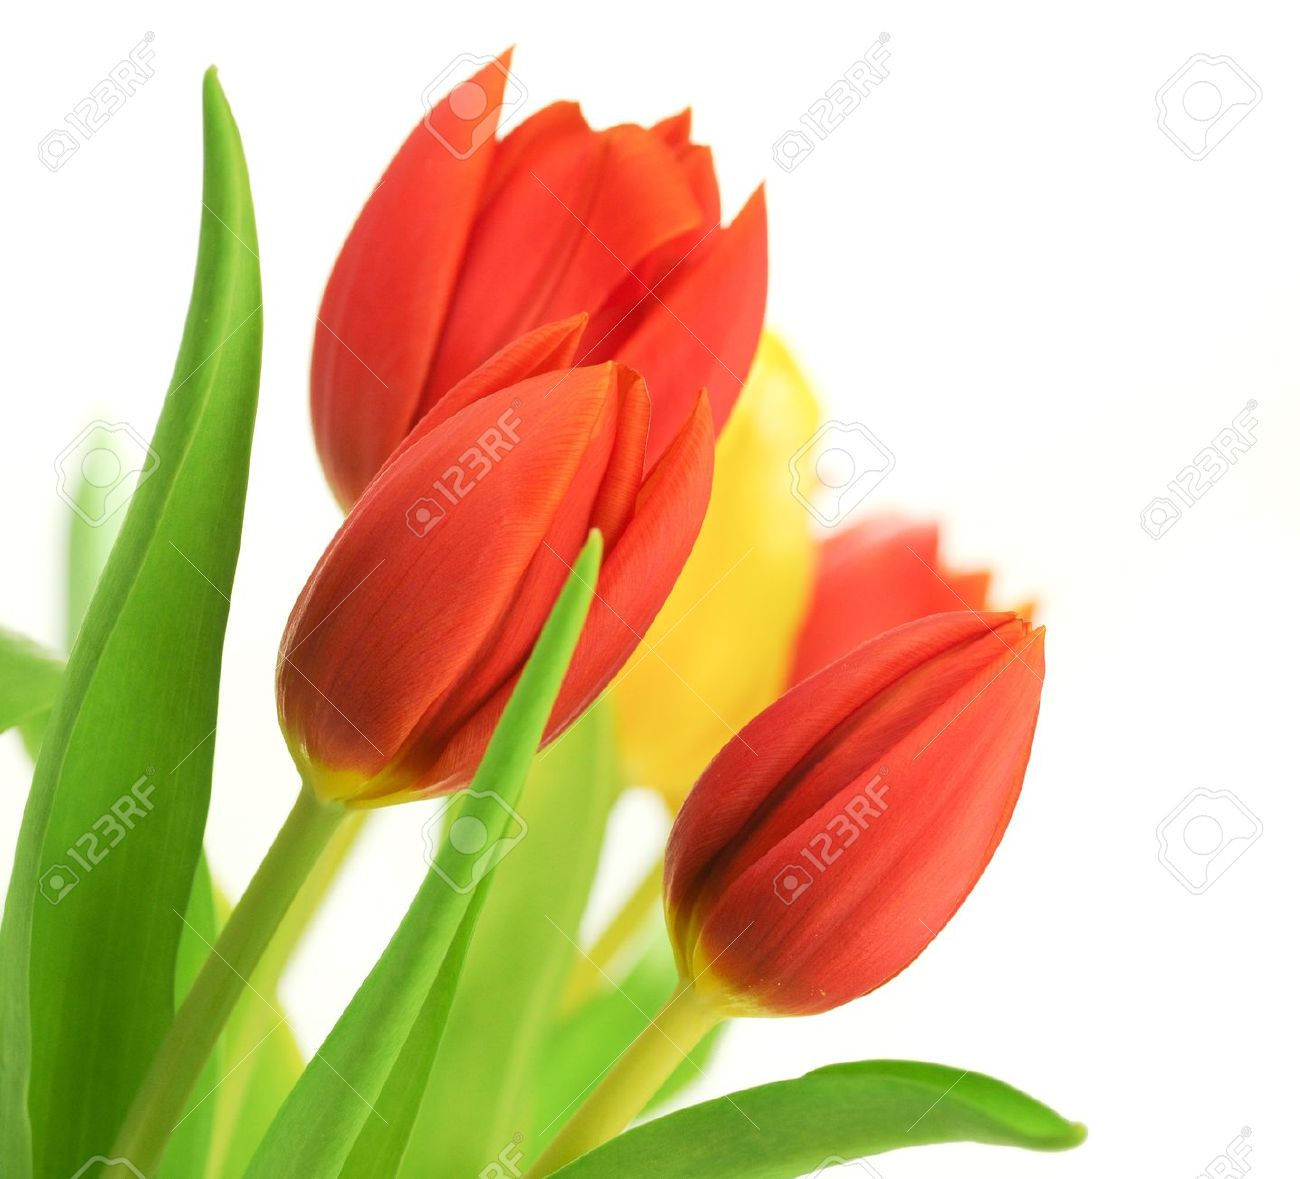 Border of red tulips over a white background and one yellow tulip, with leaves, flowers are placed in the angle of the image Stock Photo - 9250534